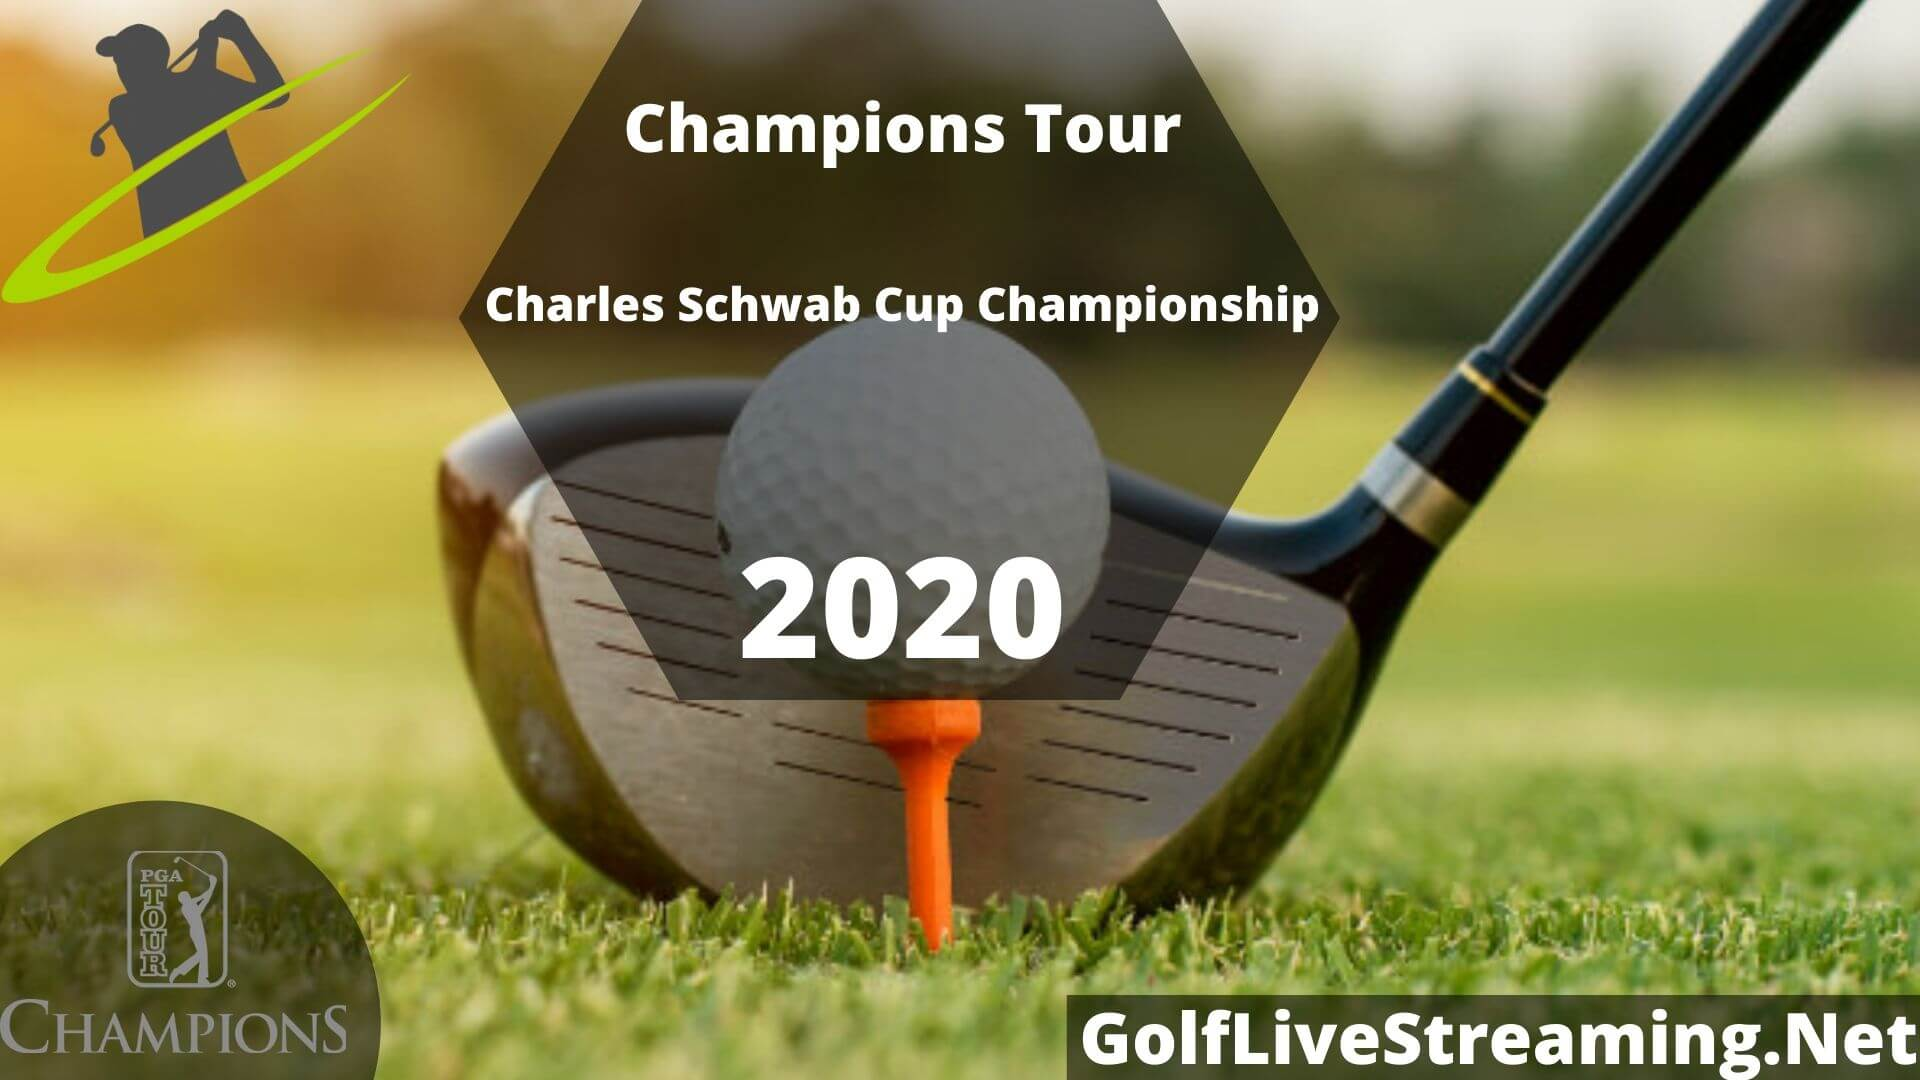 Charles Schwab Cup Championship Live Stream 2020 | Champions Tour Round 3